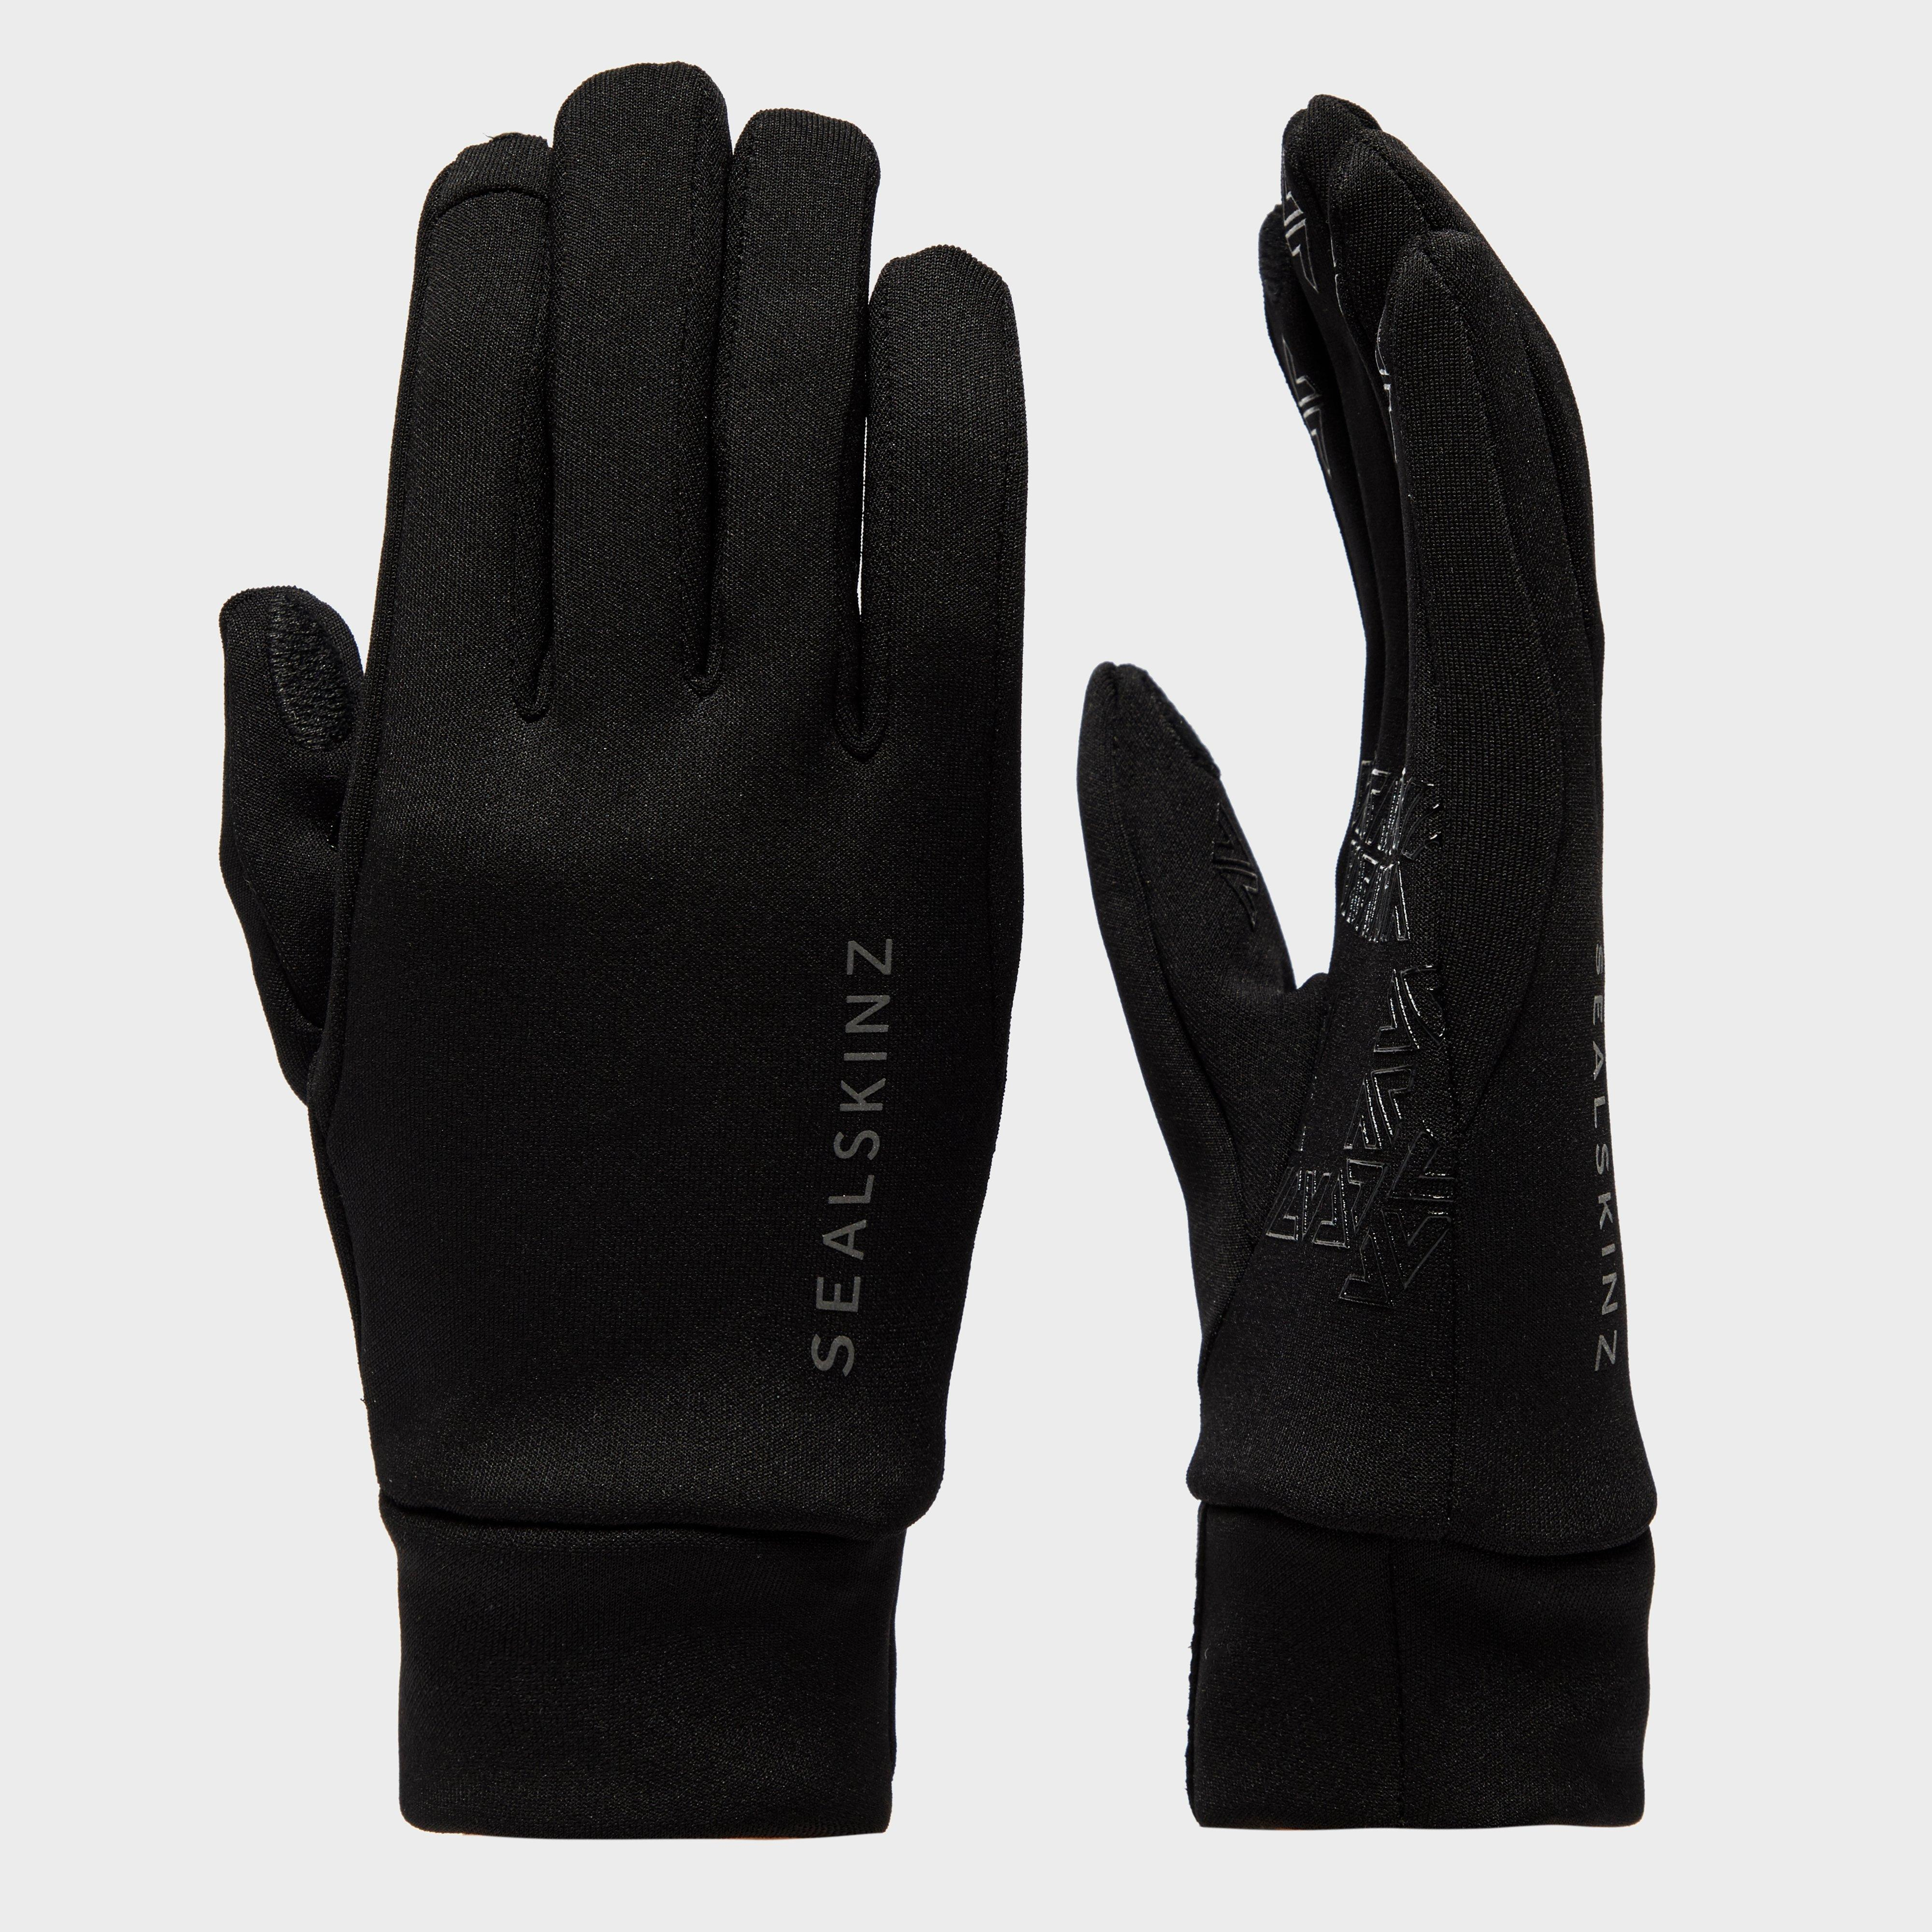 Sealskinz Women's Fairfield Glove, Black